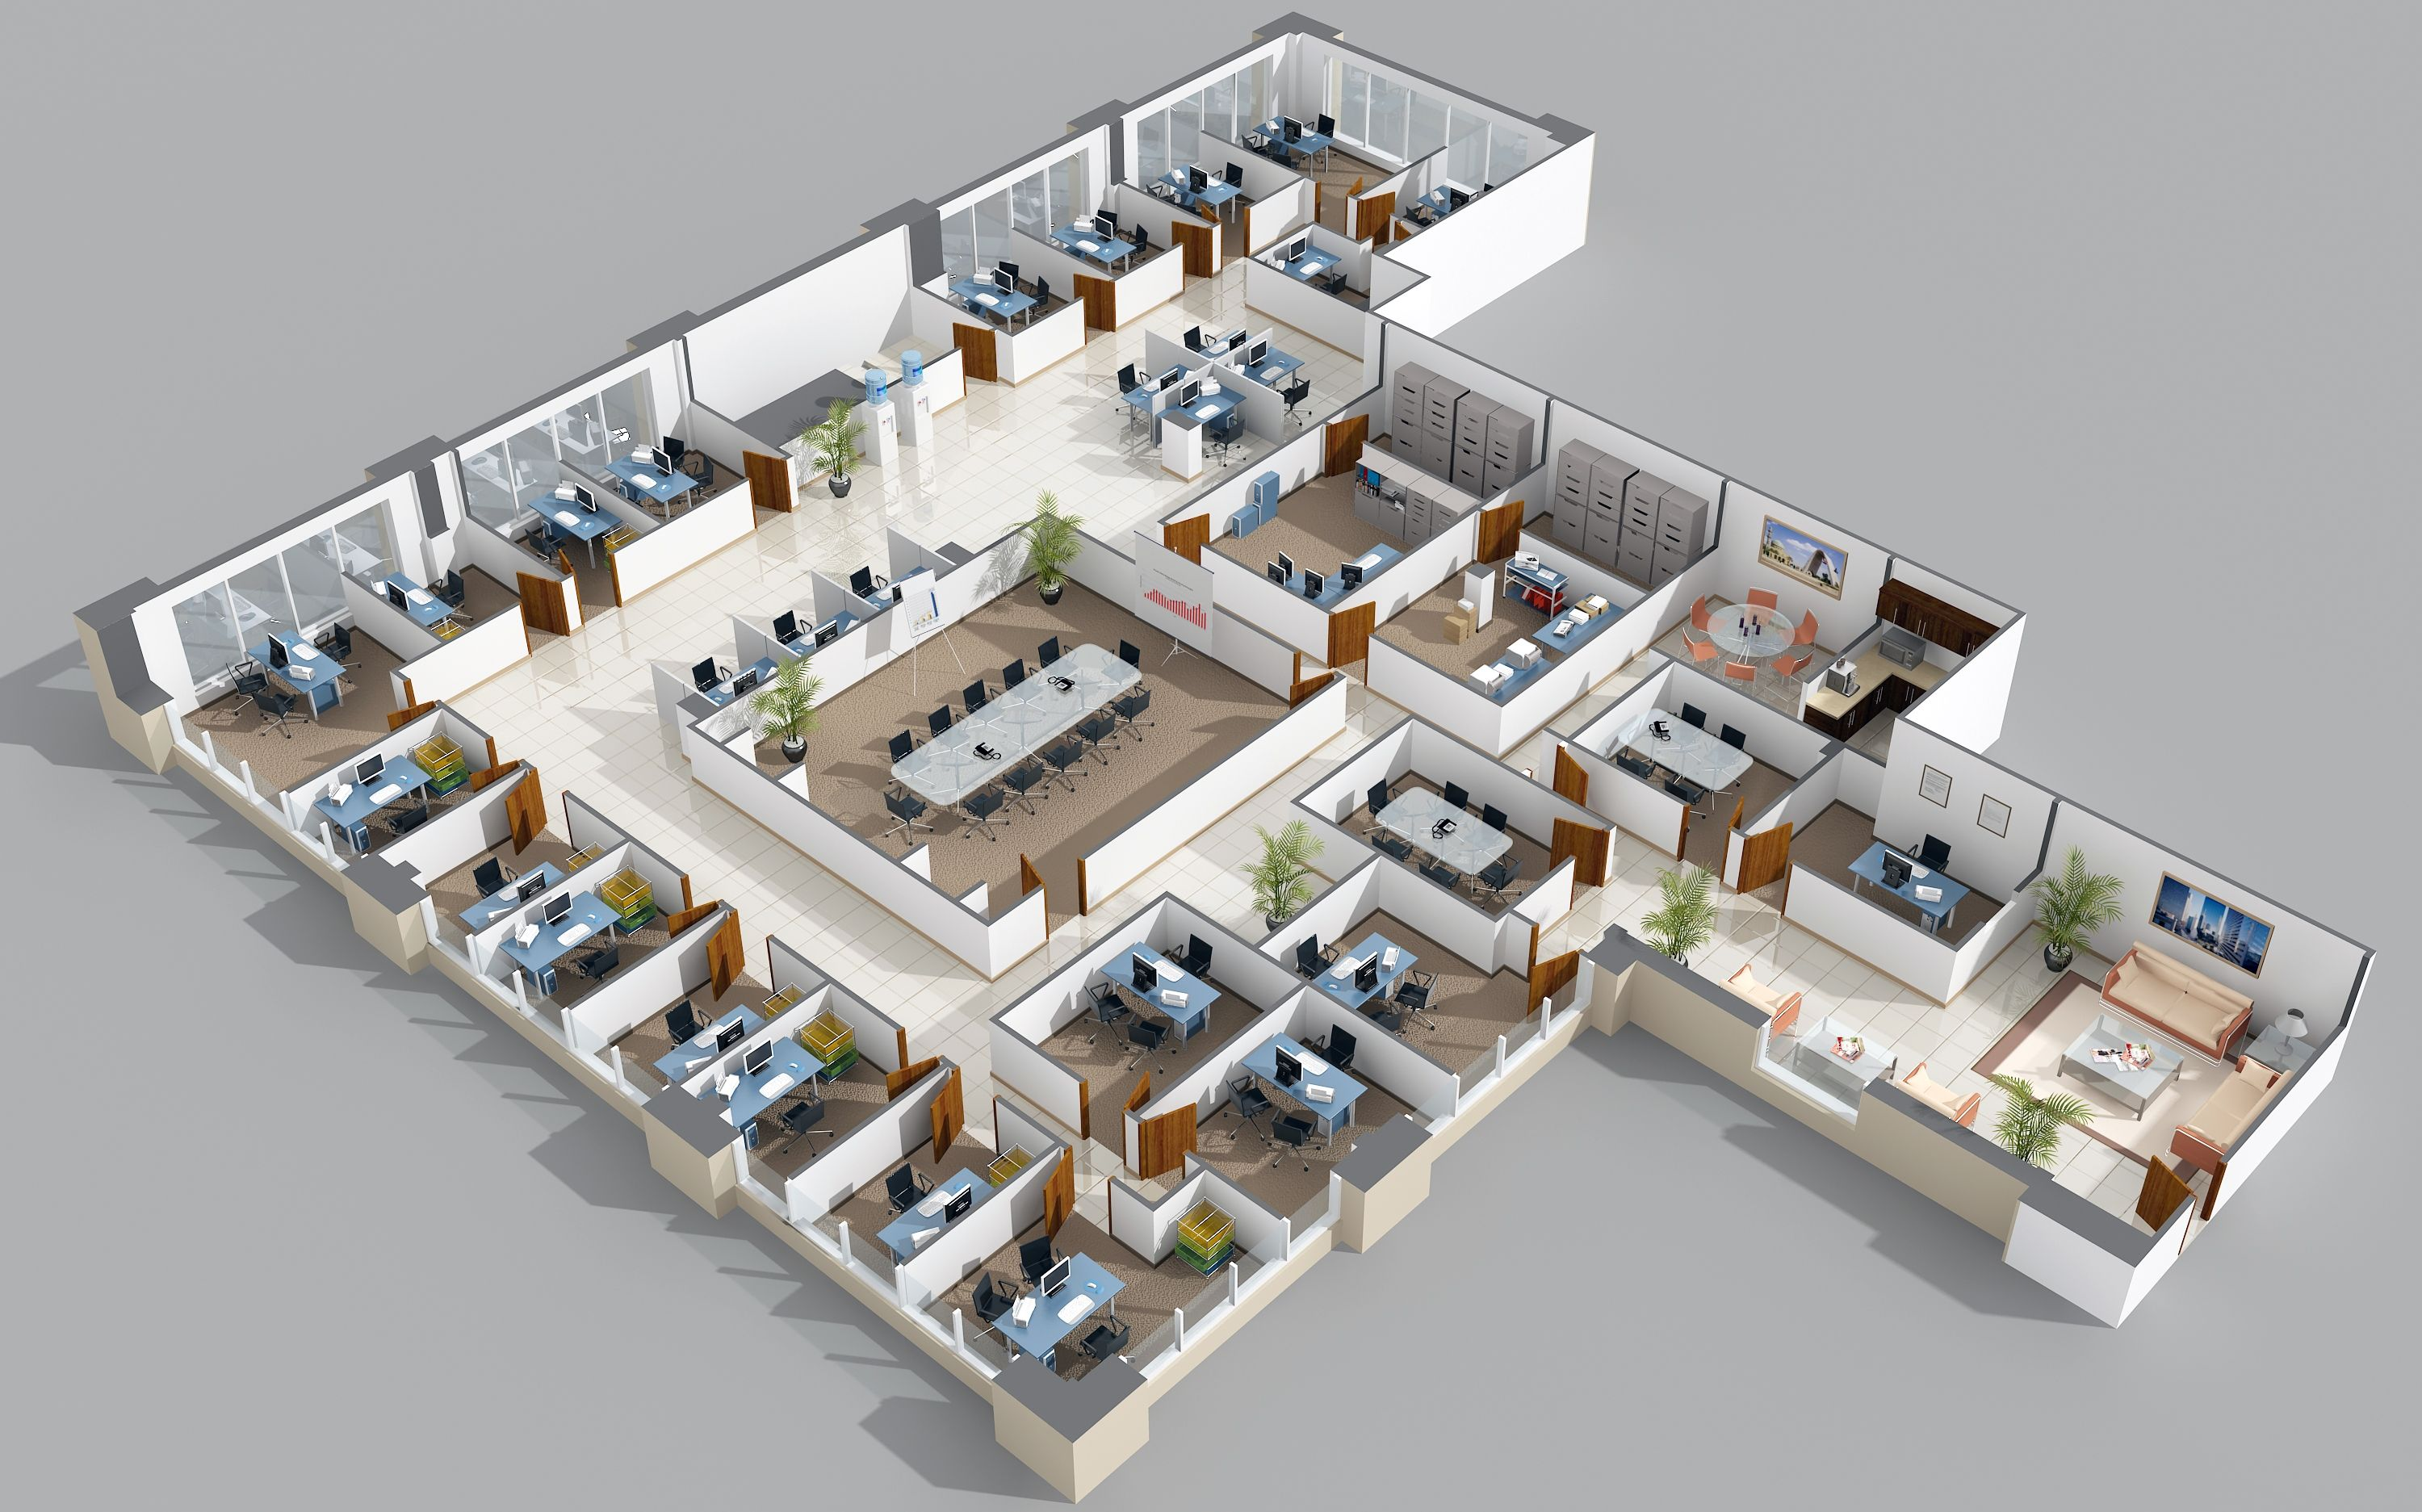 Office layout no doors veritas 99 jean pinterest for Warehouse floor plan design software free